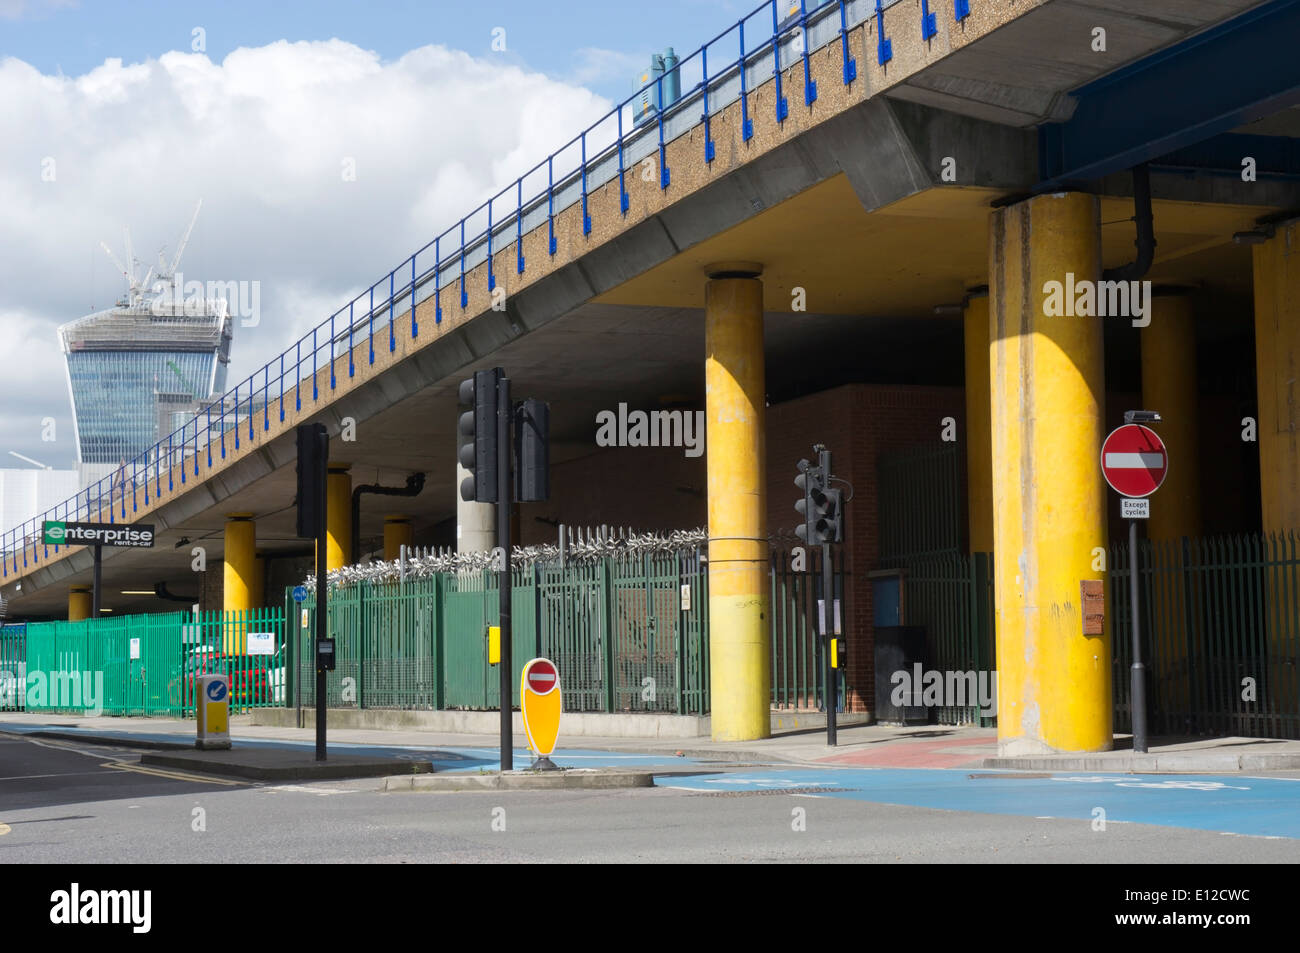 Elevated section of the Docklands Light Railway next to Cable Street in Tower Hamlets, East London. - Stock Image